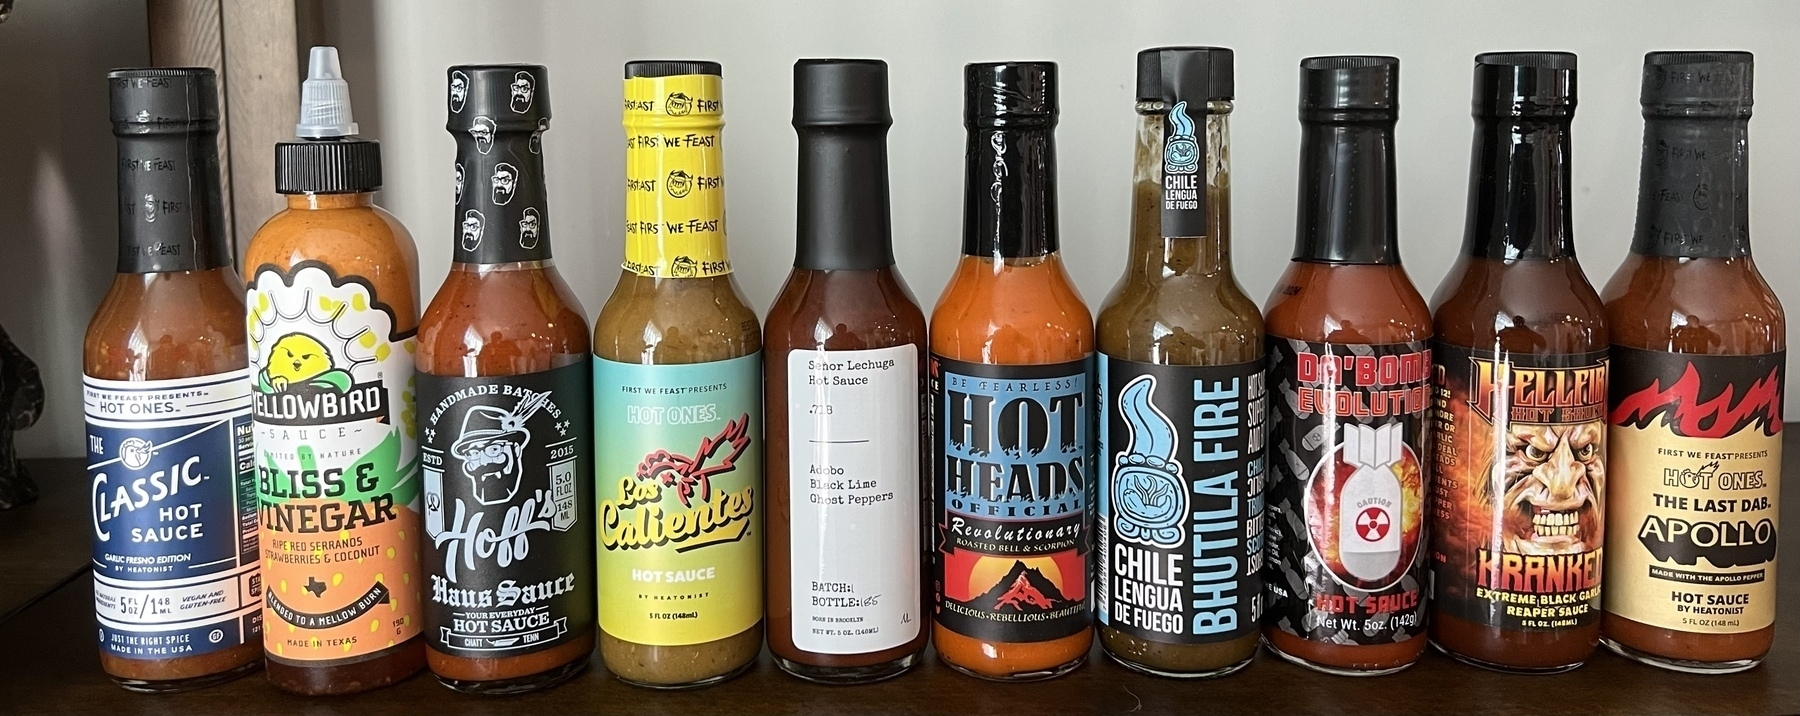 Ten hot sauces from Hot Ones lined up side-by-side.